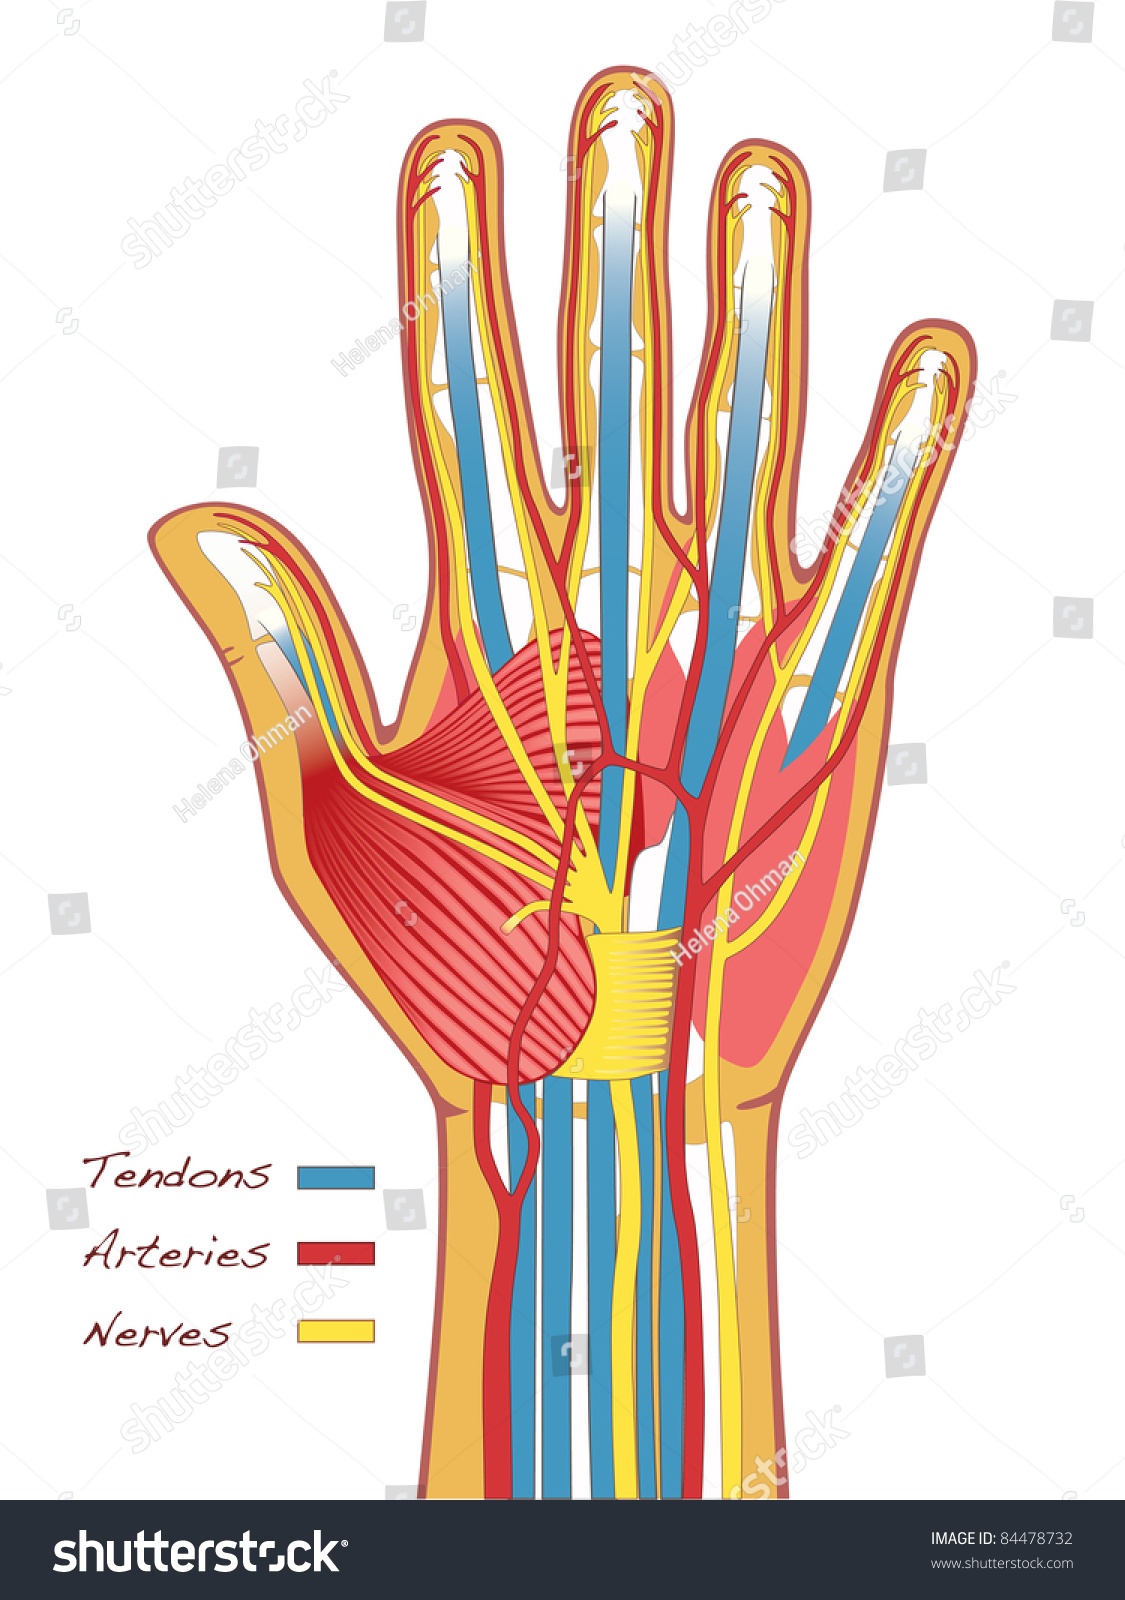 Medical Illustration Hands Anatomy Bones Tendons Stock Vektorgrafik